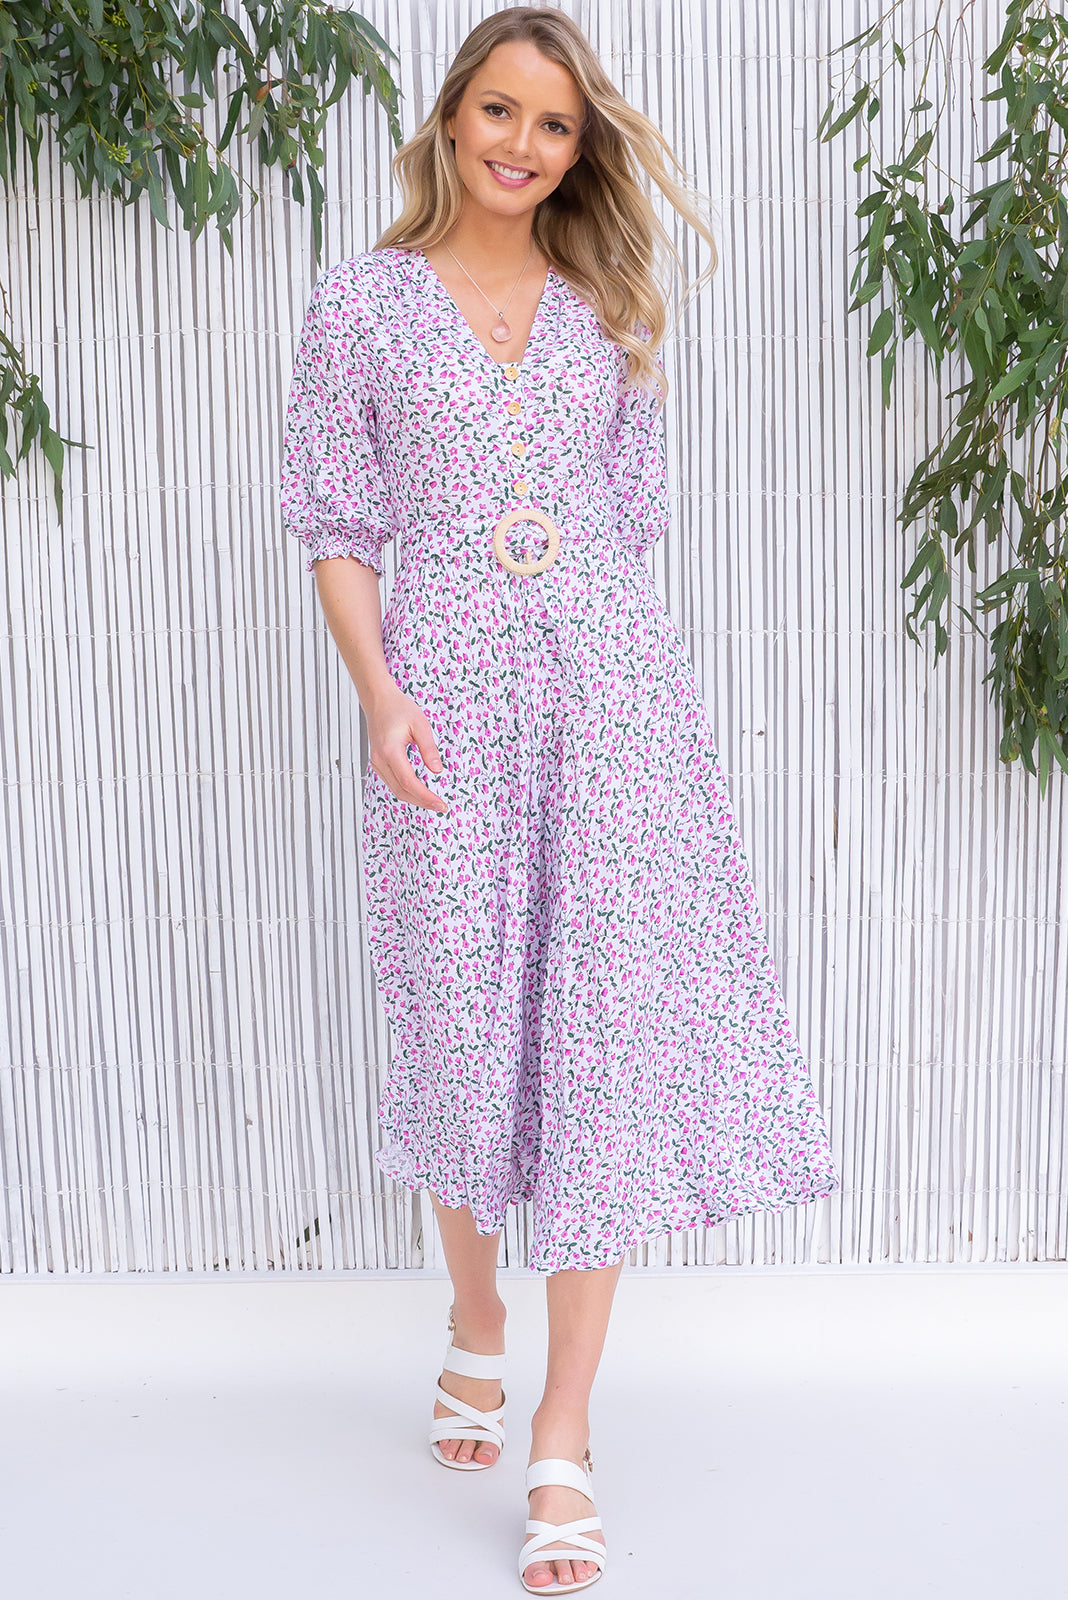 Primrose Portia Pink Dress features functional buttons from bust to waist, 3/4 sleeve with shirring cuffs, side pockets and woven 100% rayon in white base with mini pink and green floral pattern.